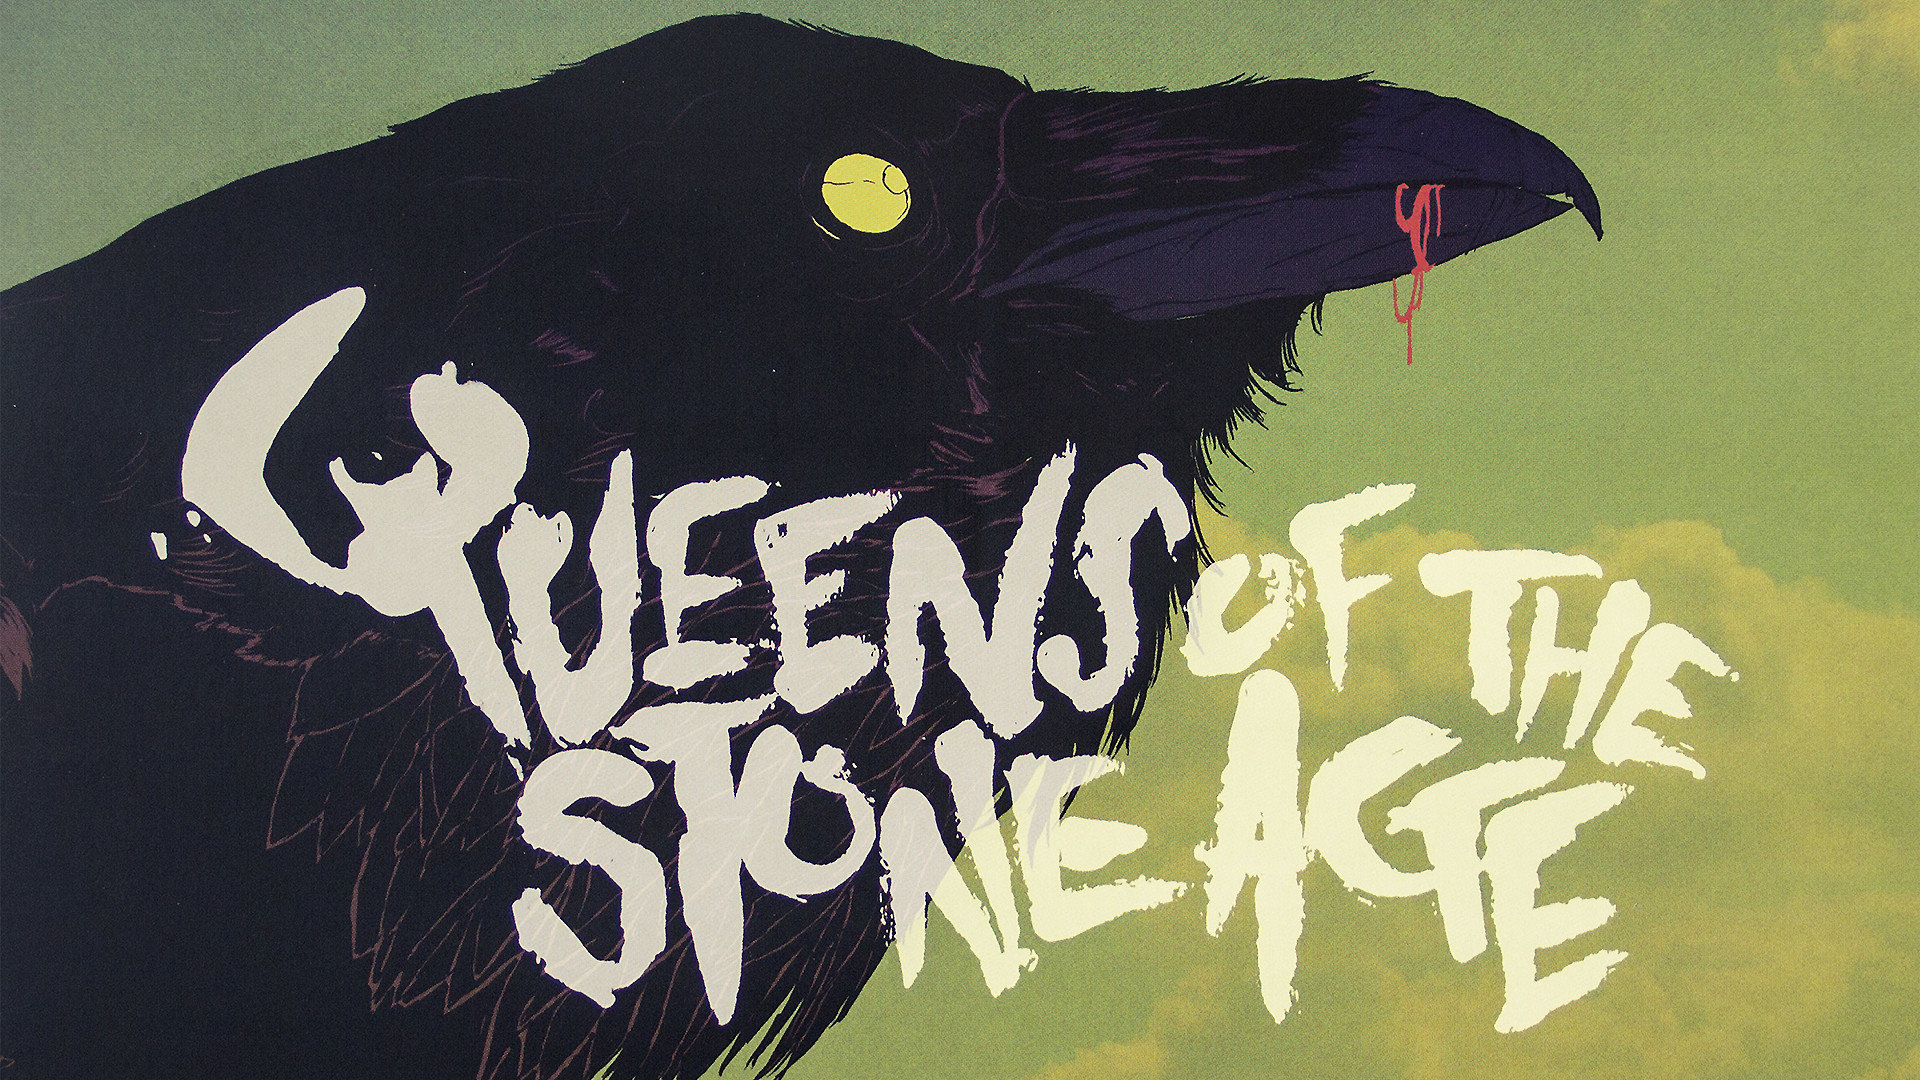 Awesome Queens Of The Stone Age Free Wallpaper ID35355 For Hd 1080p PC